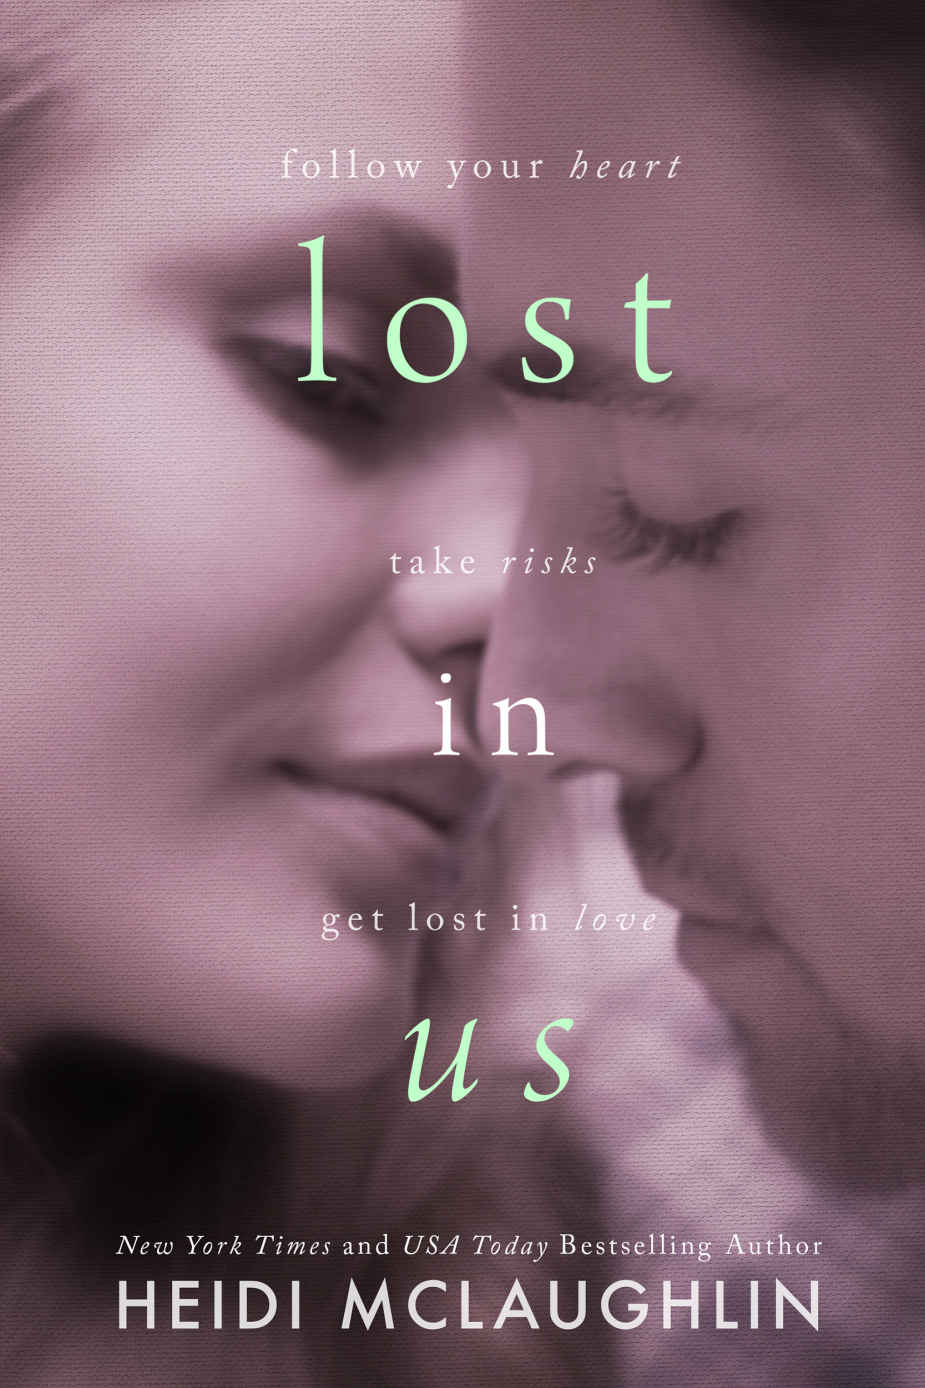 Lost In Us by Heidi McLaughlin